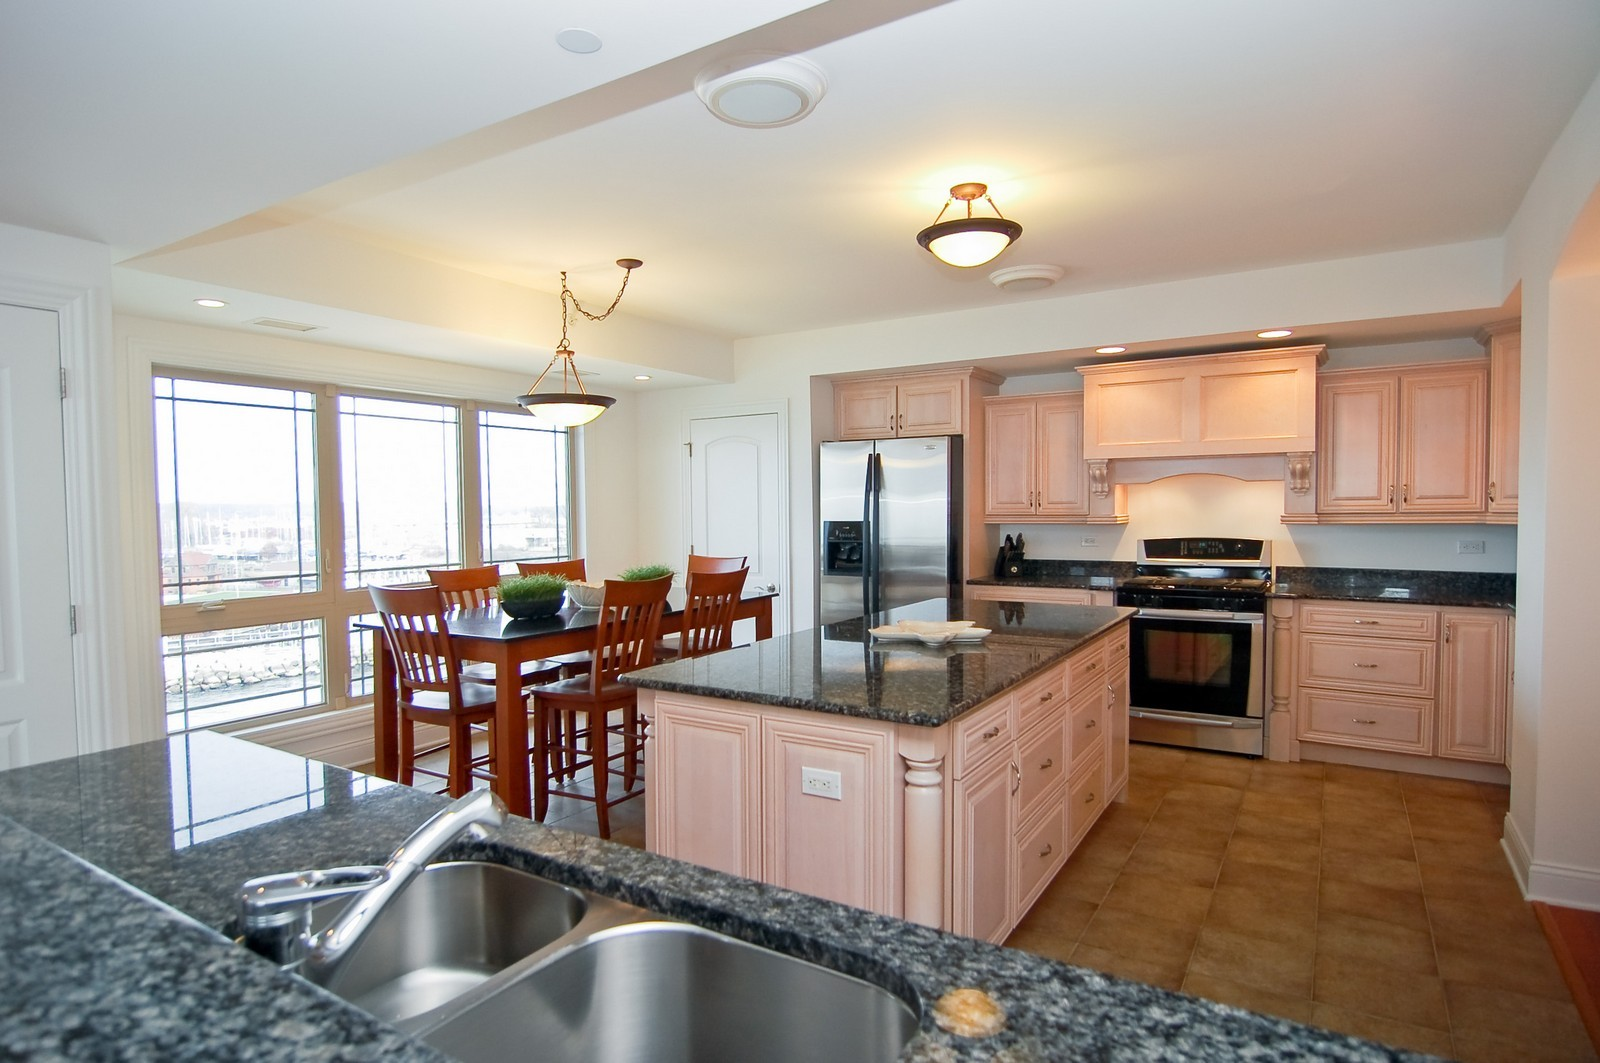 Real Estate Photography - 200- 7B Lake Street, St Joseph, MI, 49085 - Kitchen